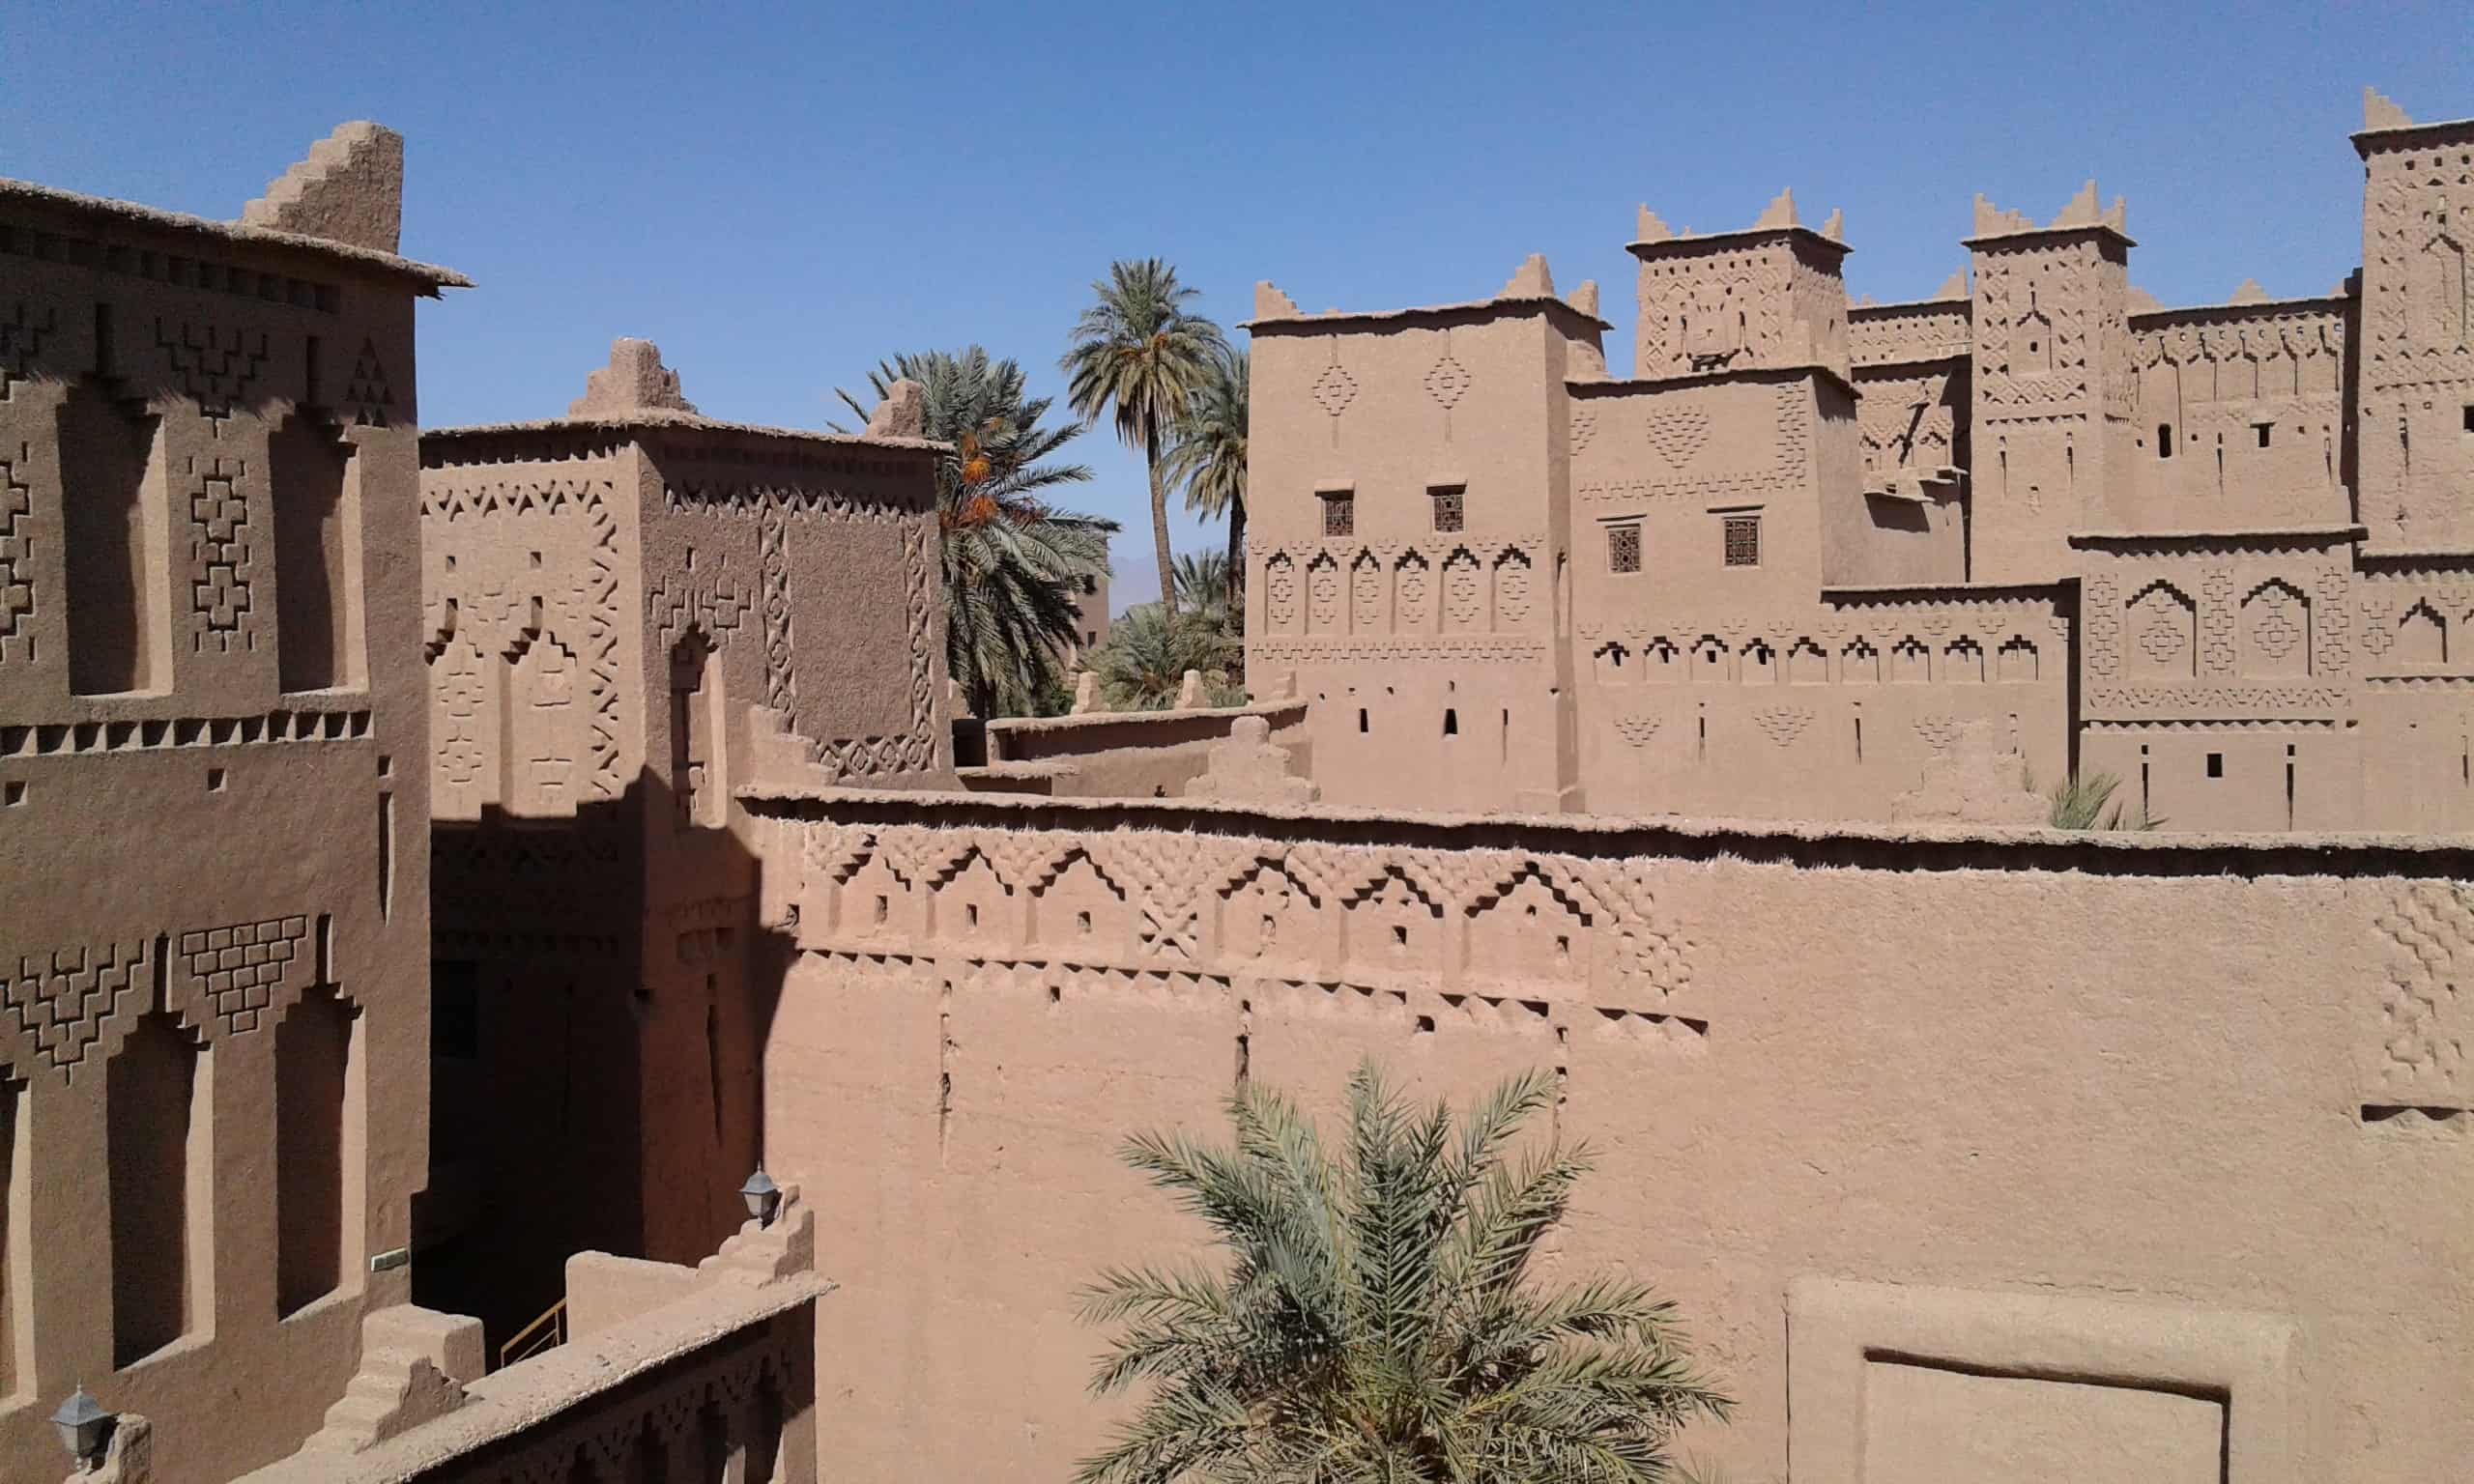 Skoura-kasbah-valley-of-a-thousand-kasbahs-desert-trip.jpg